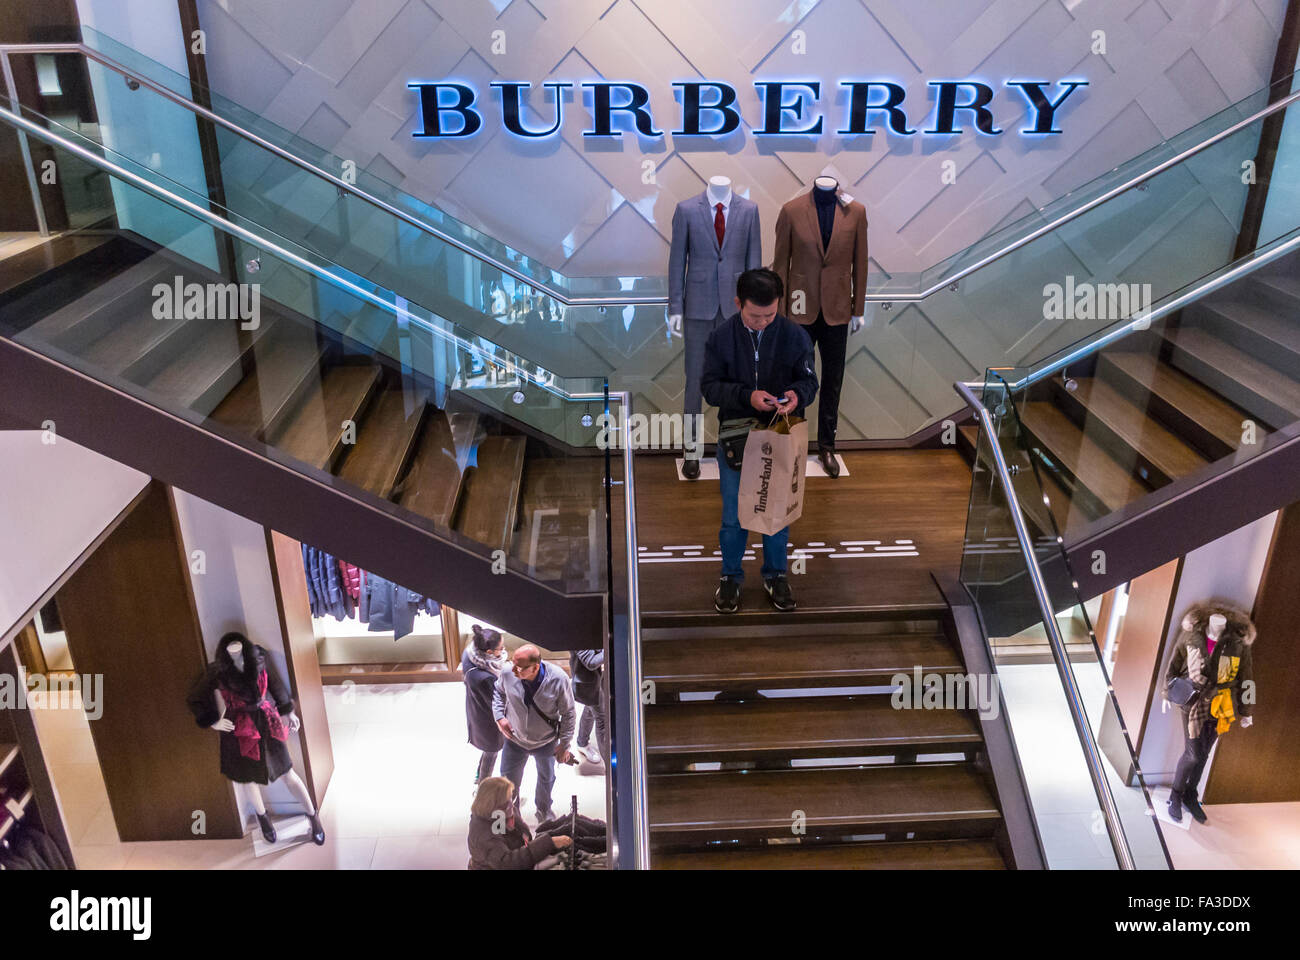 d37ae20b72e5 Paris, France, People Shopping in Burberry Store, Sign, in Mall, Centre  commercial,